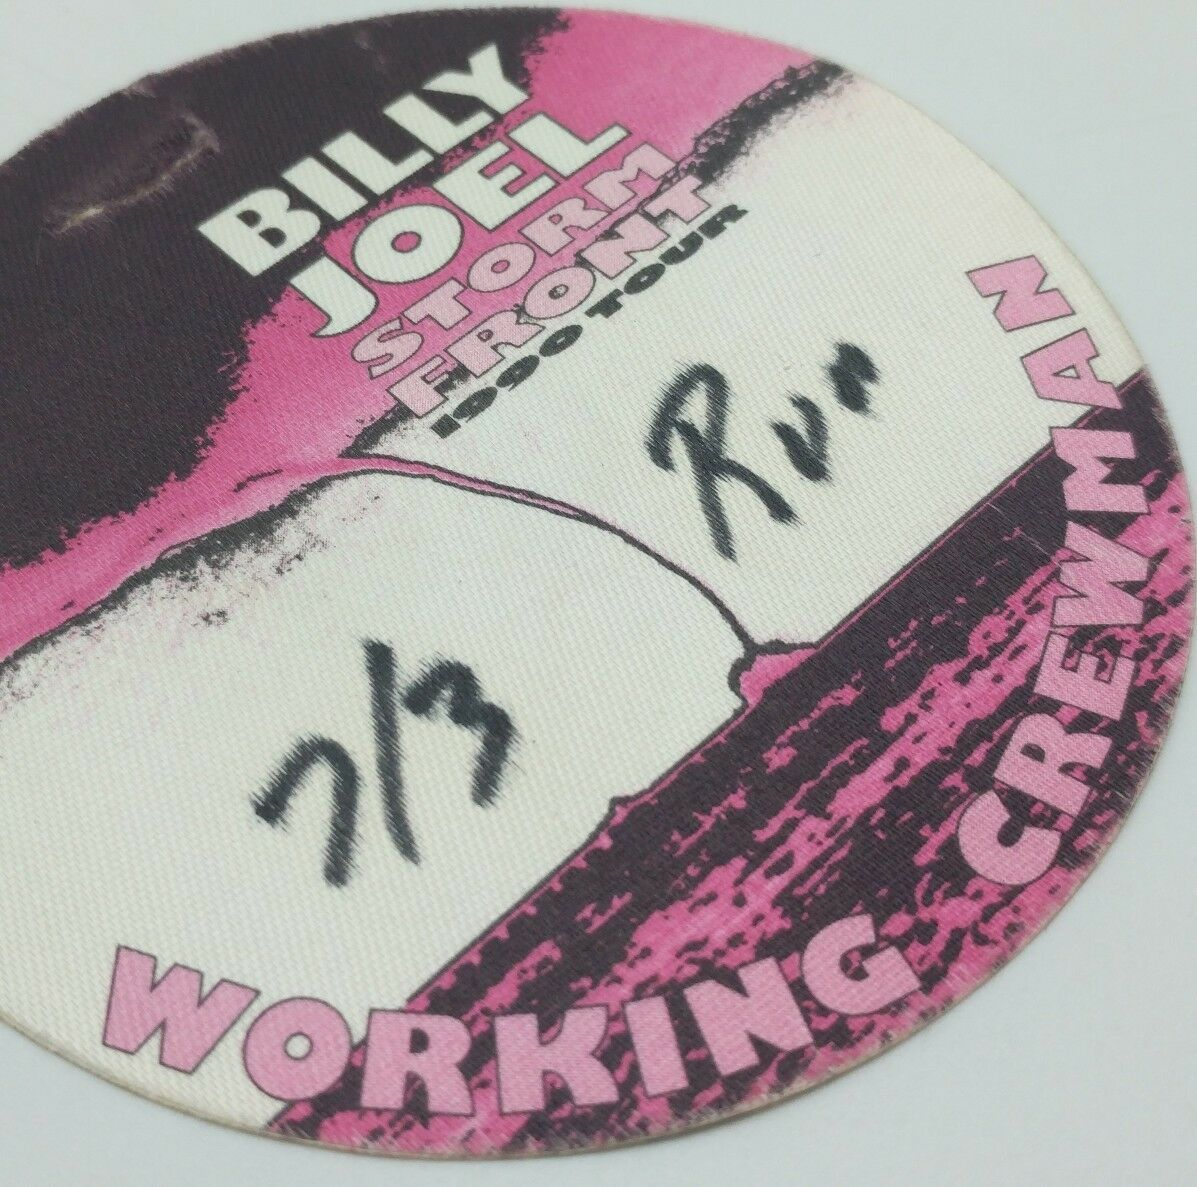 Billy Joel Storm Front 1990 Tour Working Crew Badge Canvas Sticker Rare image 3